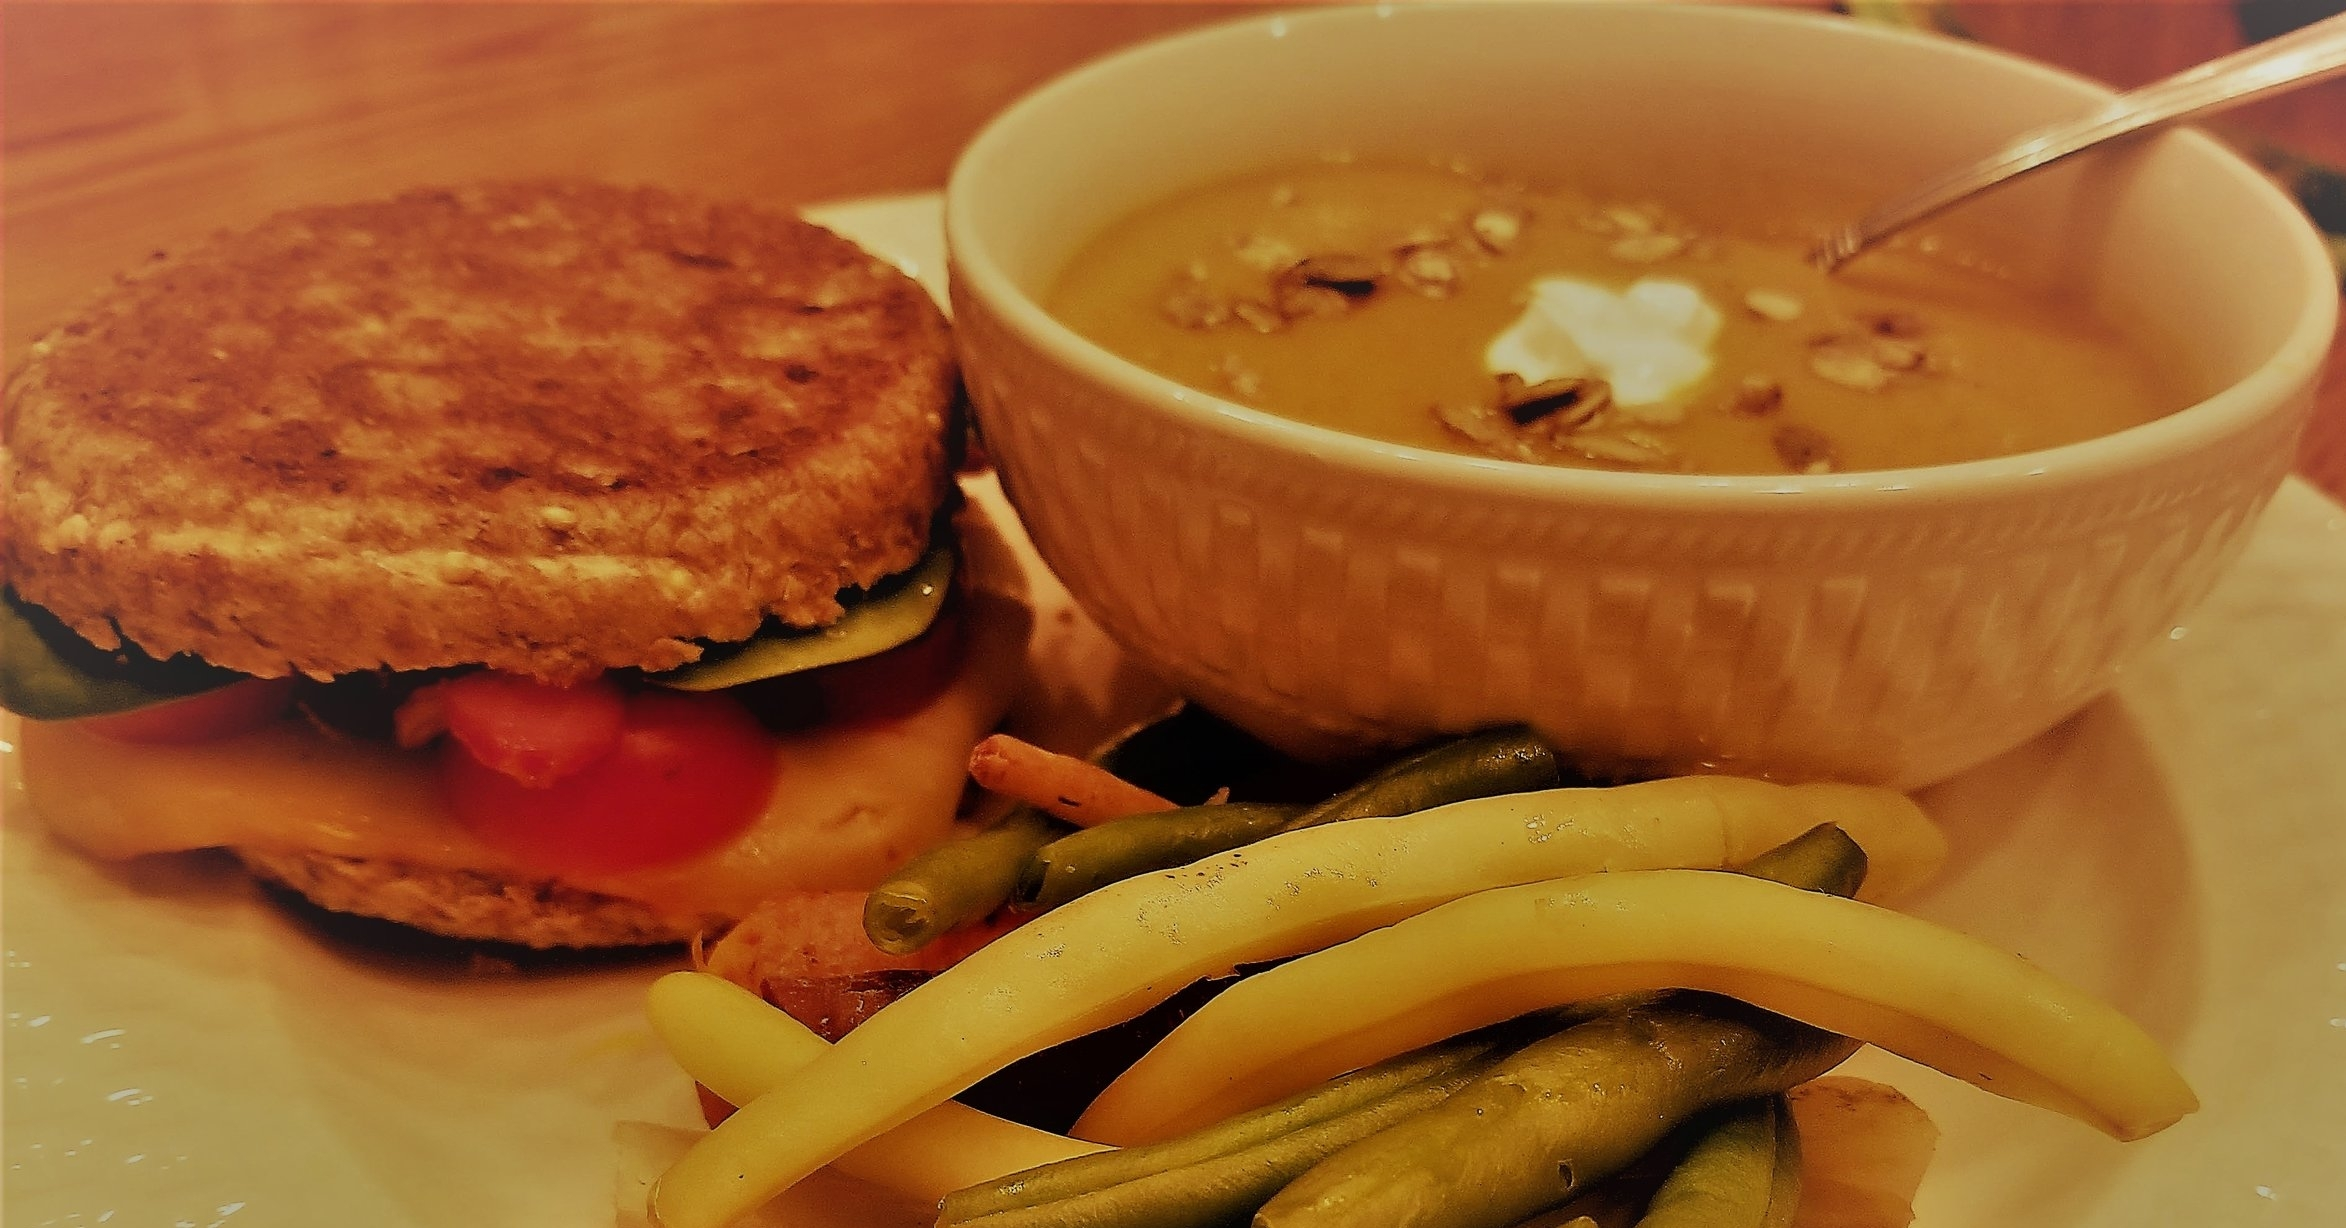 Grilled cheese, butternut squash soup (from a can - GASP!), and steamed green beans.